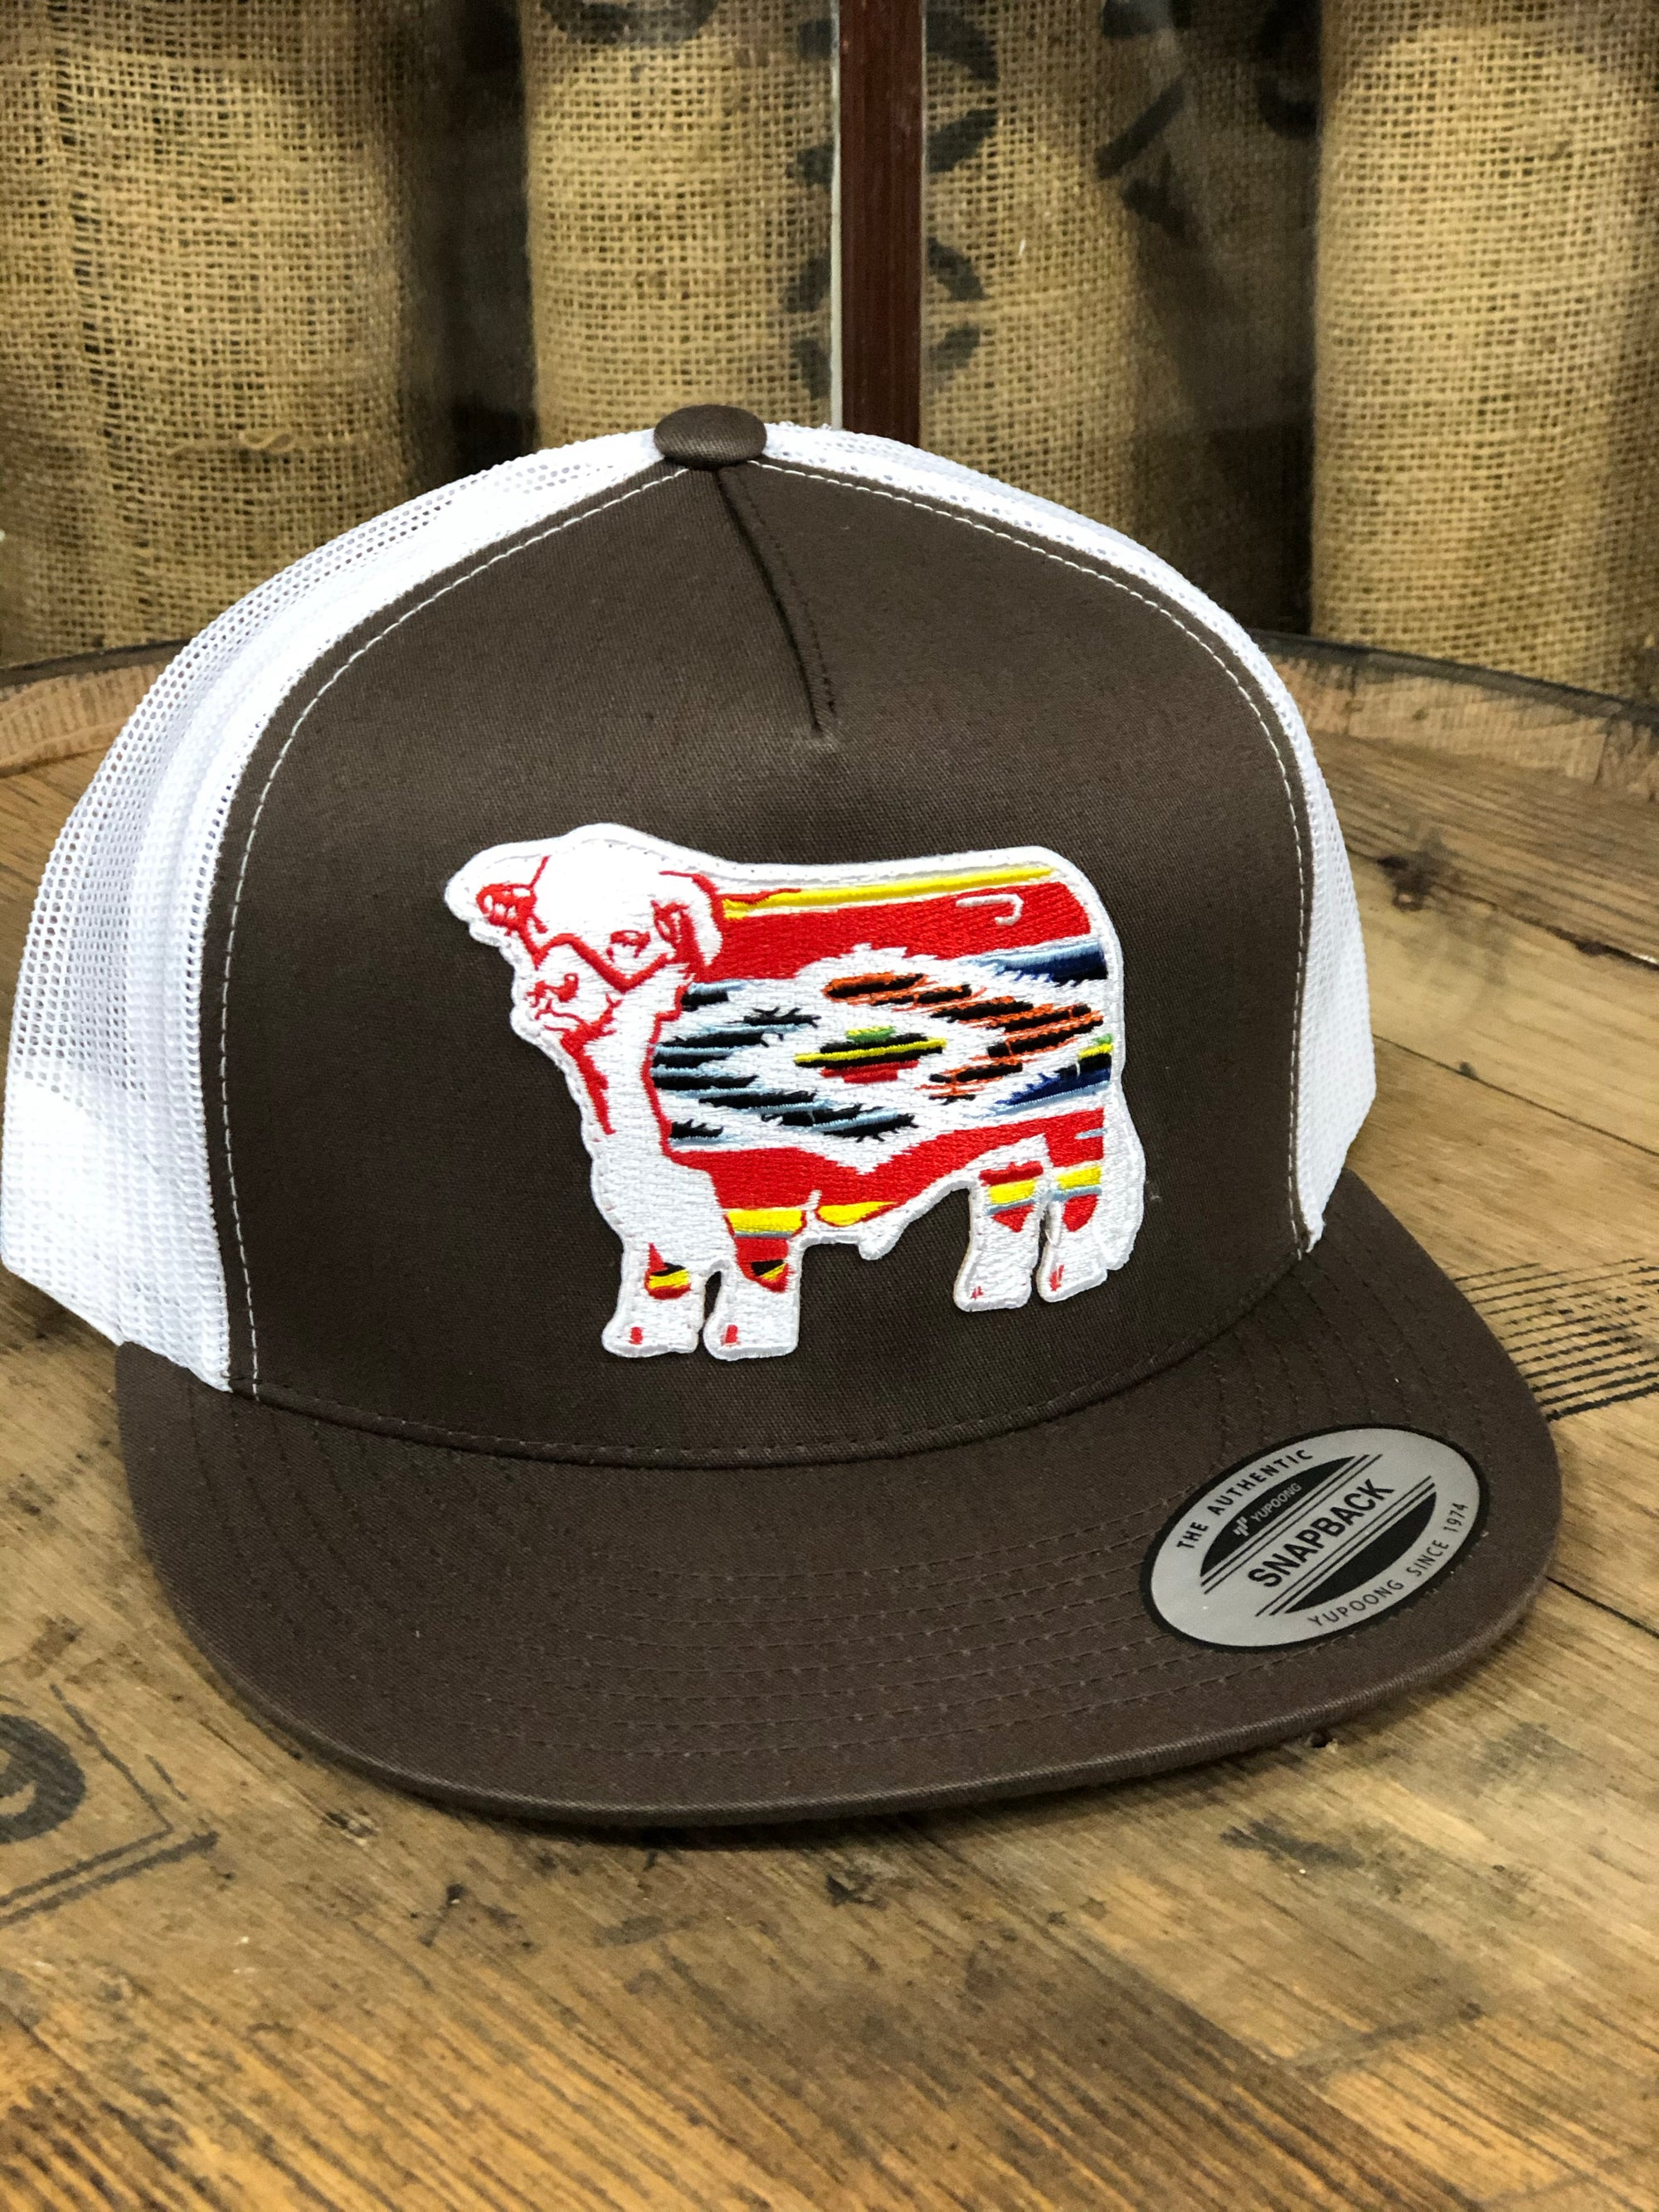 "Lazy J Ranch Wear Brown & White 4"" Serape Bull"